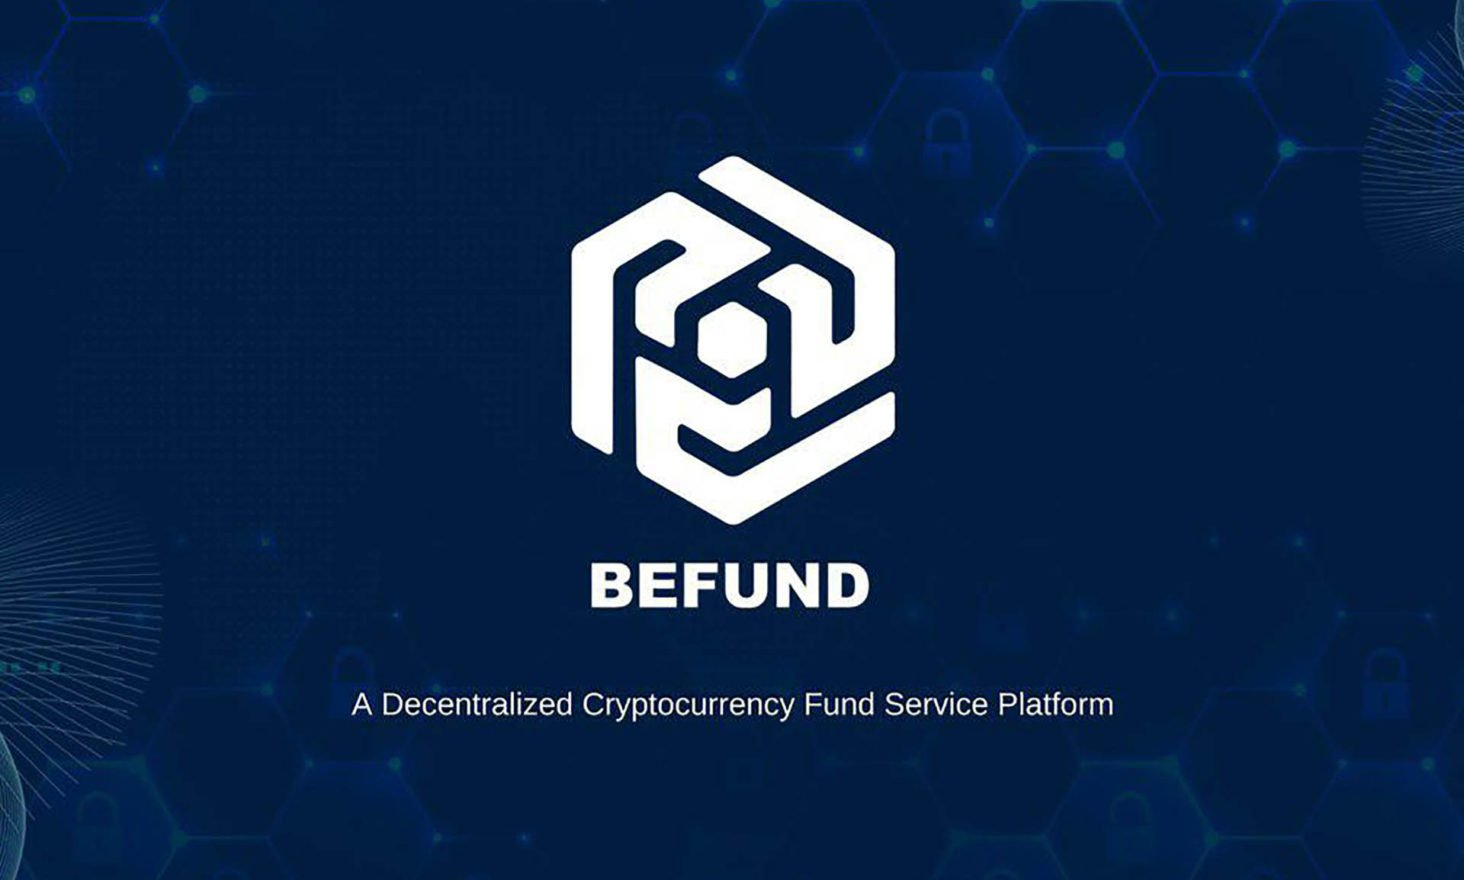 Non-Profit Befund Service Platform Attracts International Attention from Top Capital Fund Companies